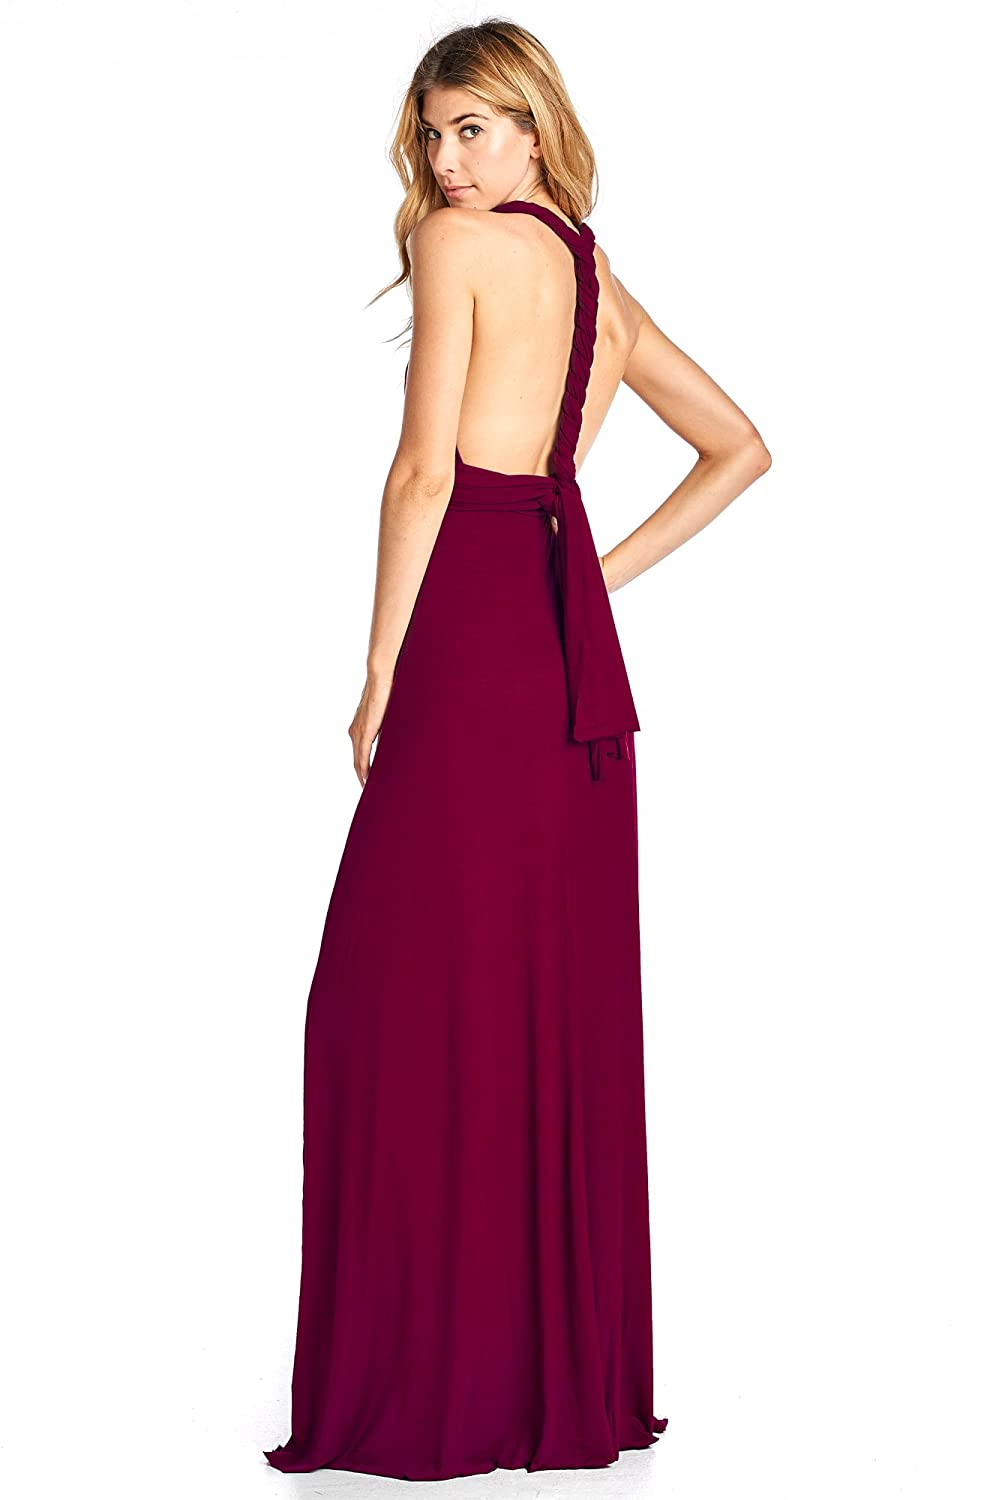 53963f78d8e 12 Ami Solid Convertible Multi Way Long T-Shirt Maxi Dress - Made In USA at  Amazon Women s Clothing store